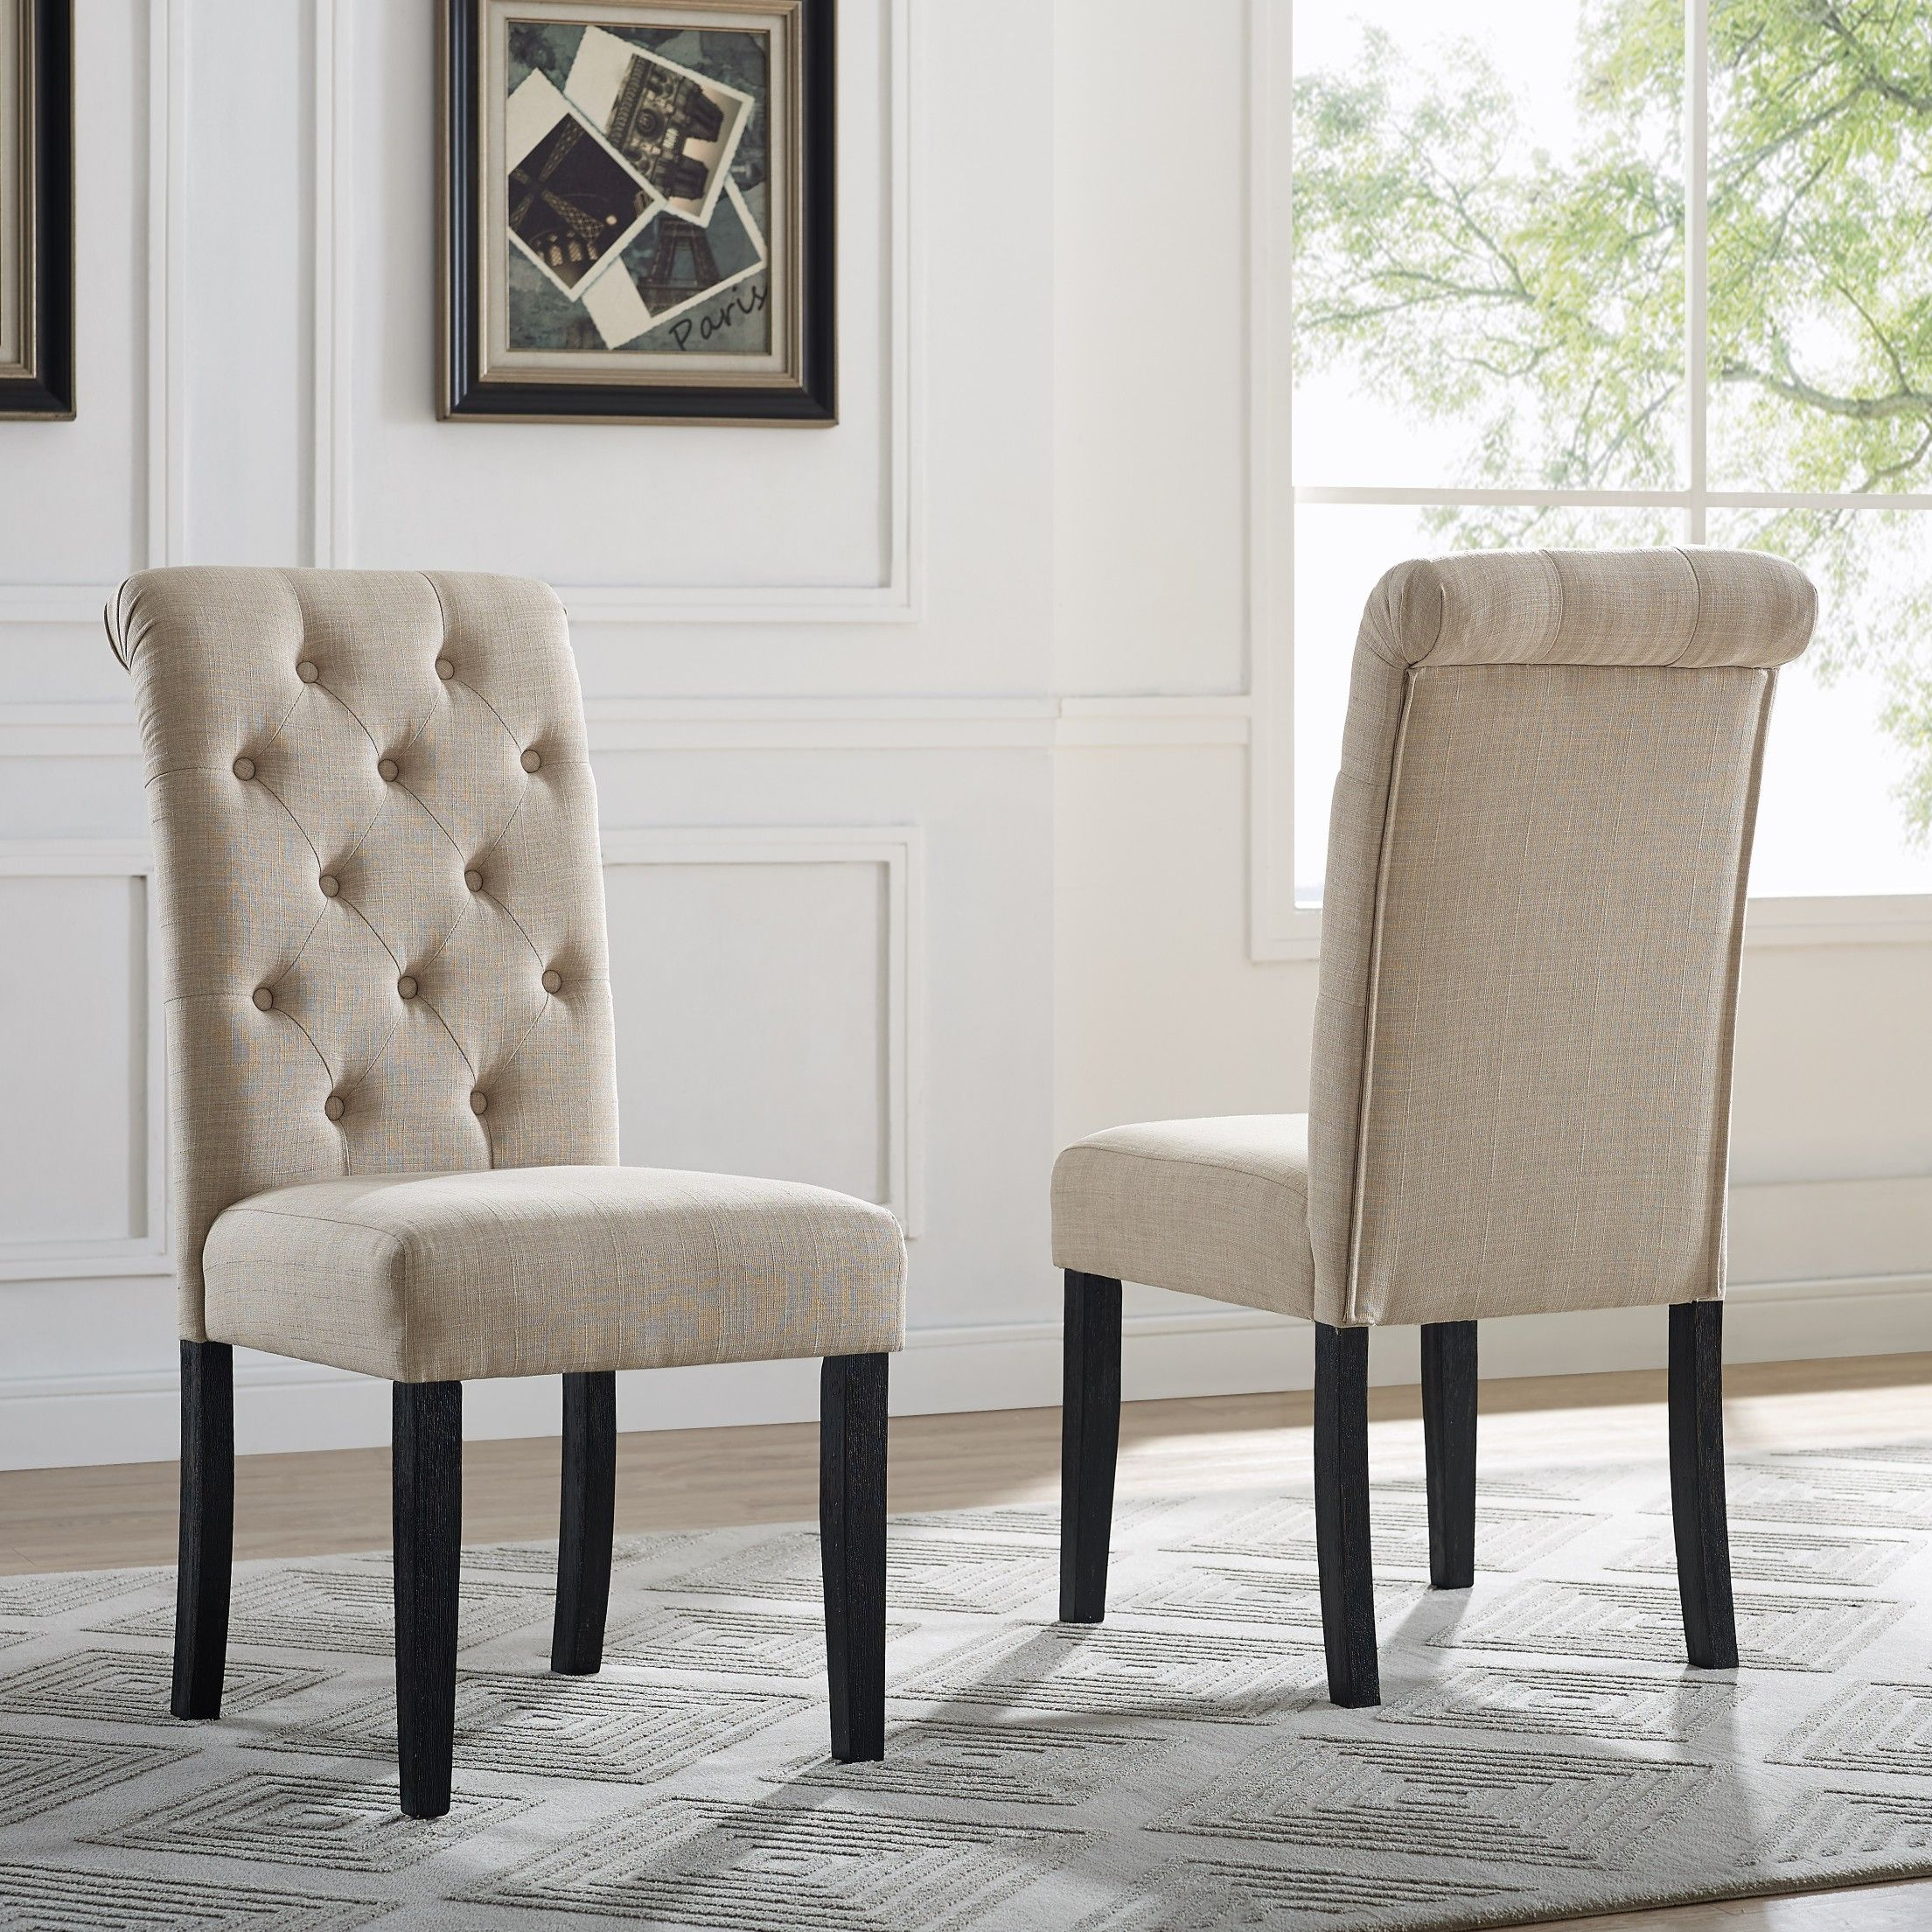 38++ Walmart dining chairs set Trend